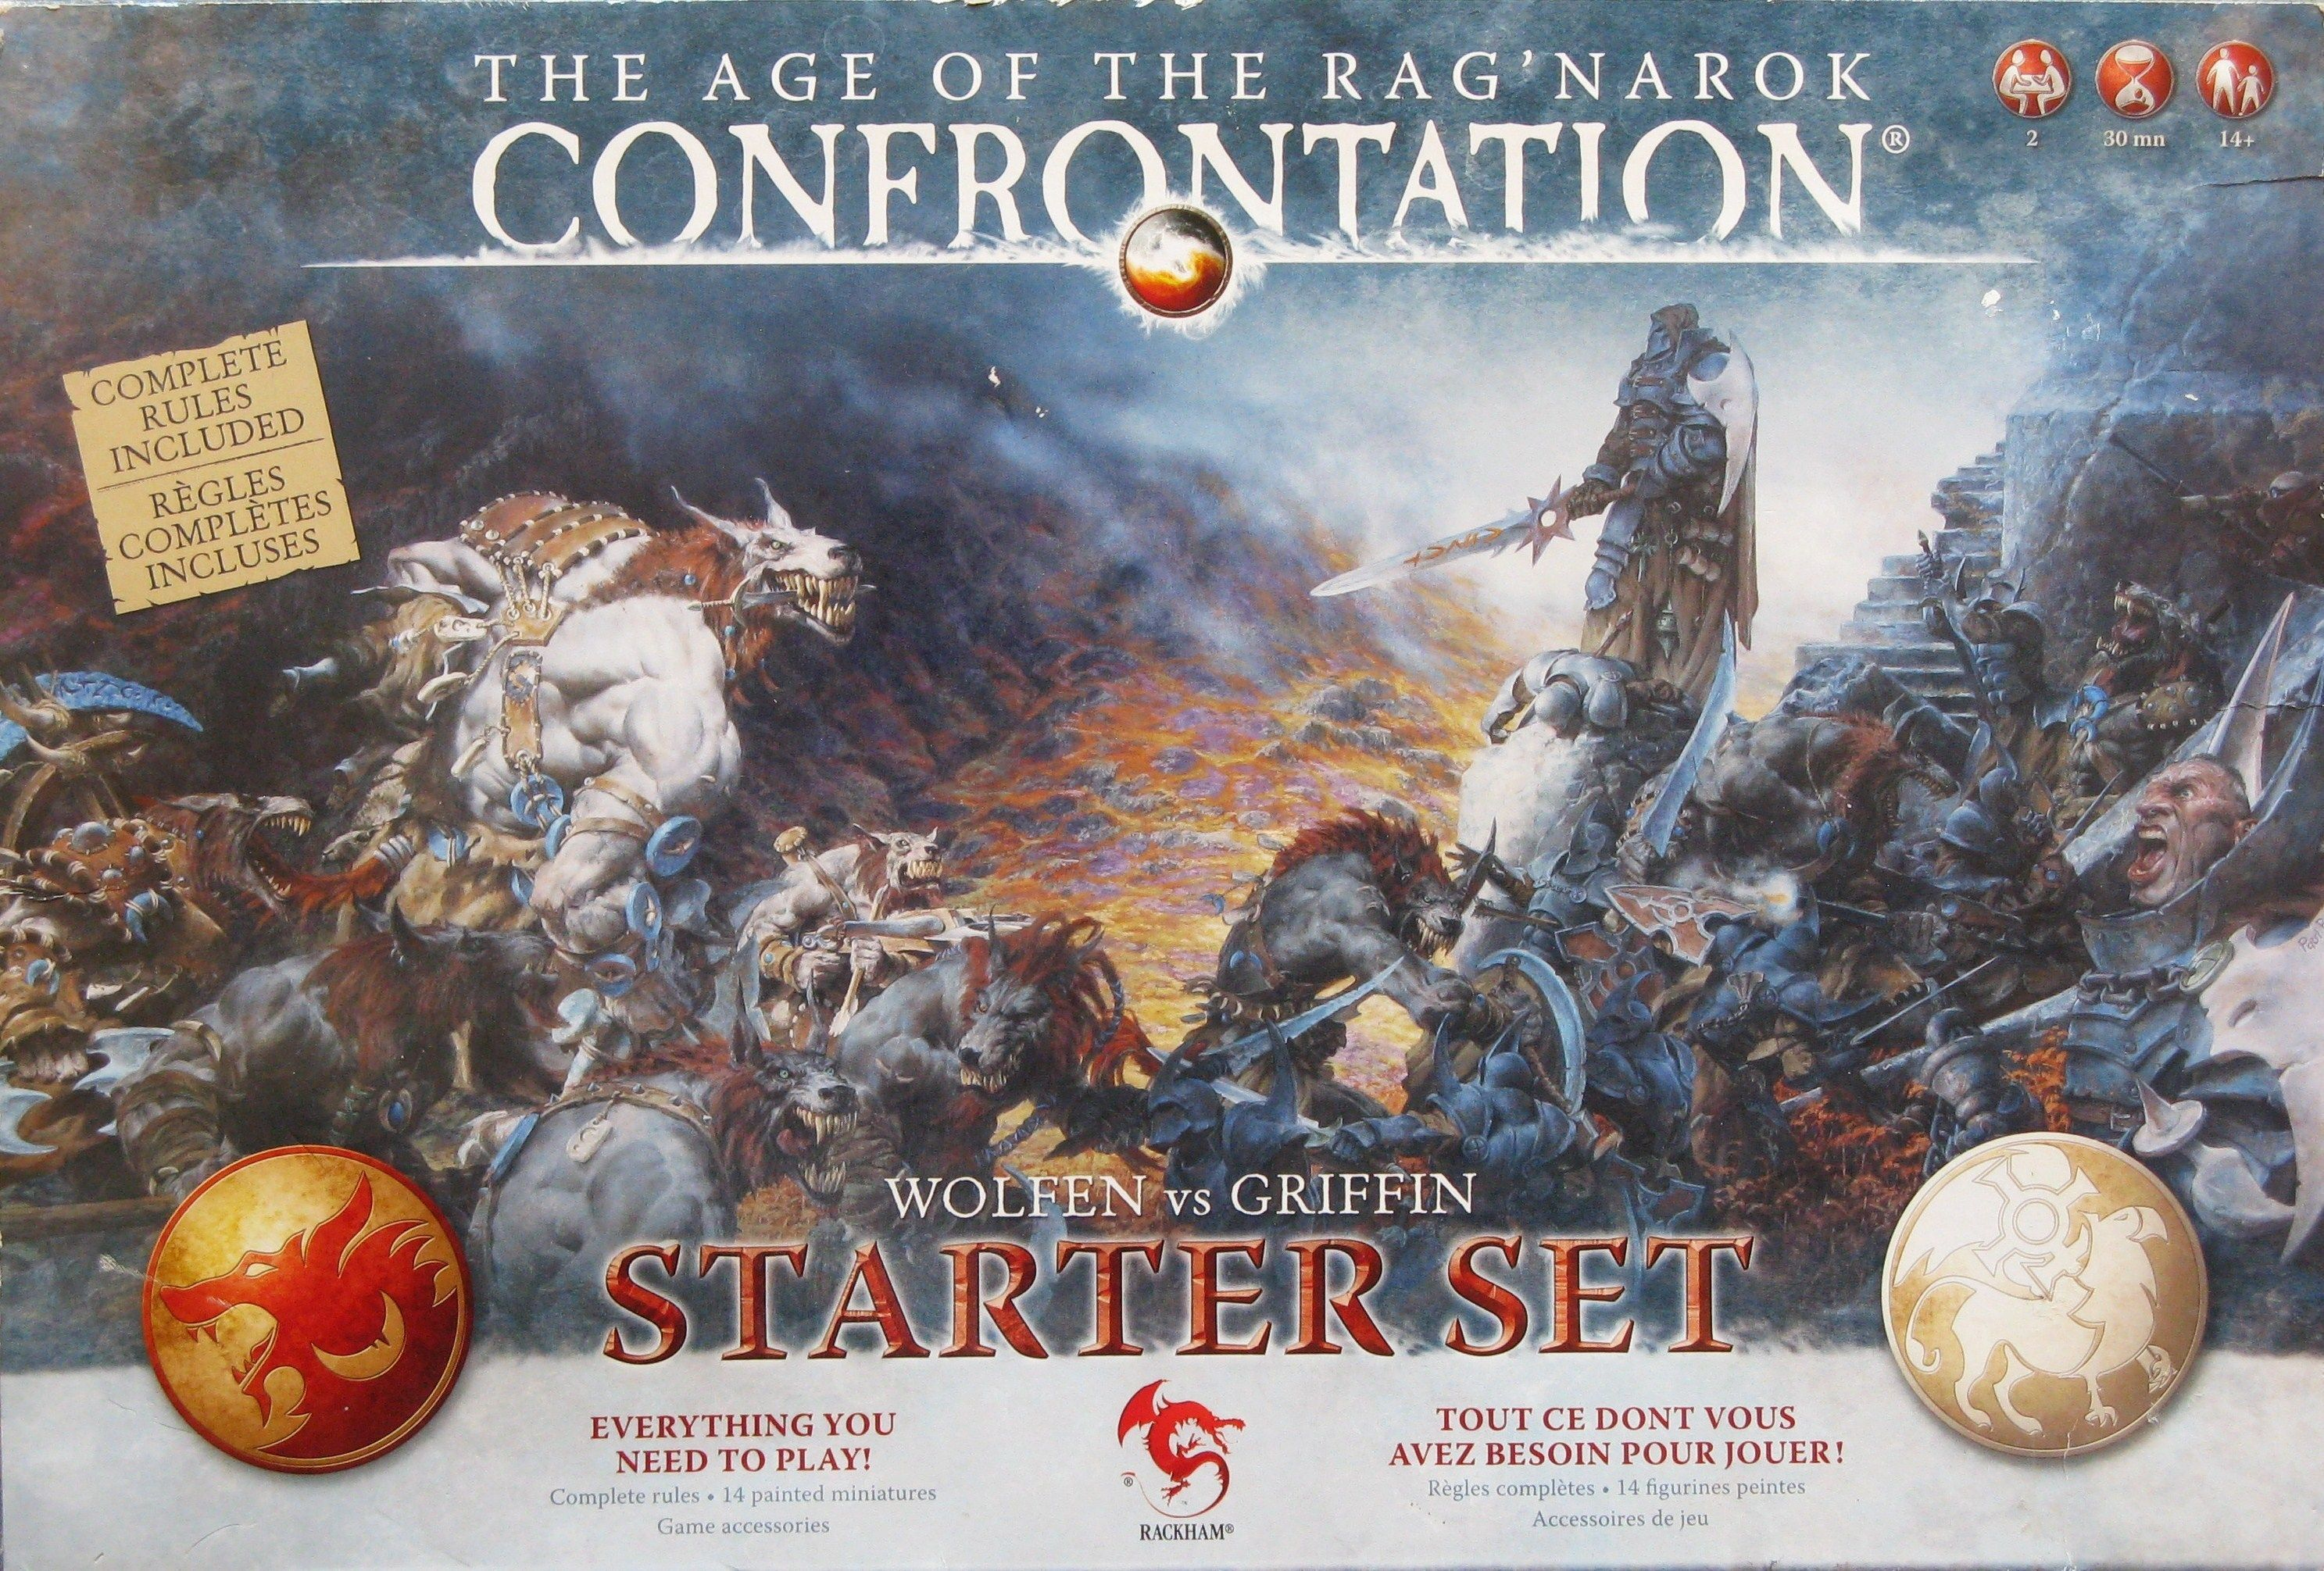 Confrontation: The Age of the Rag'Narok